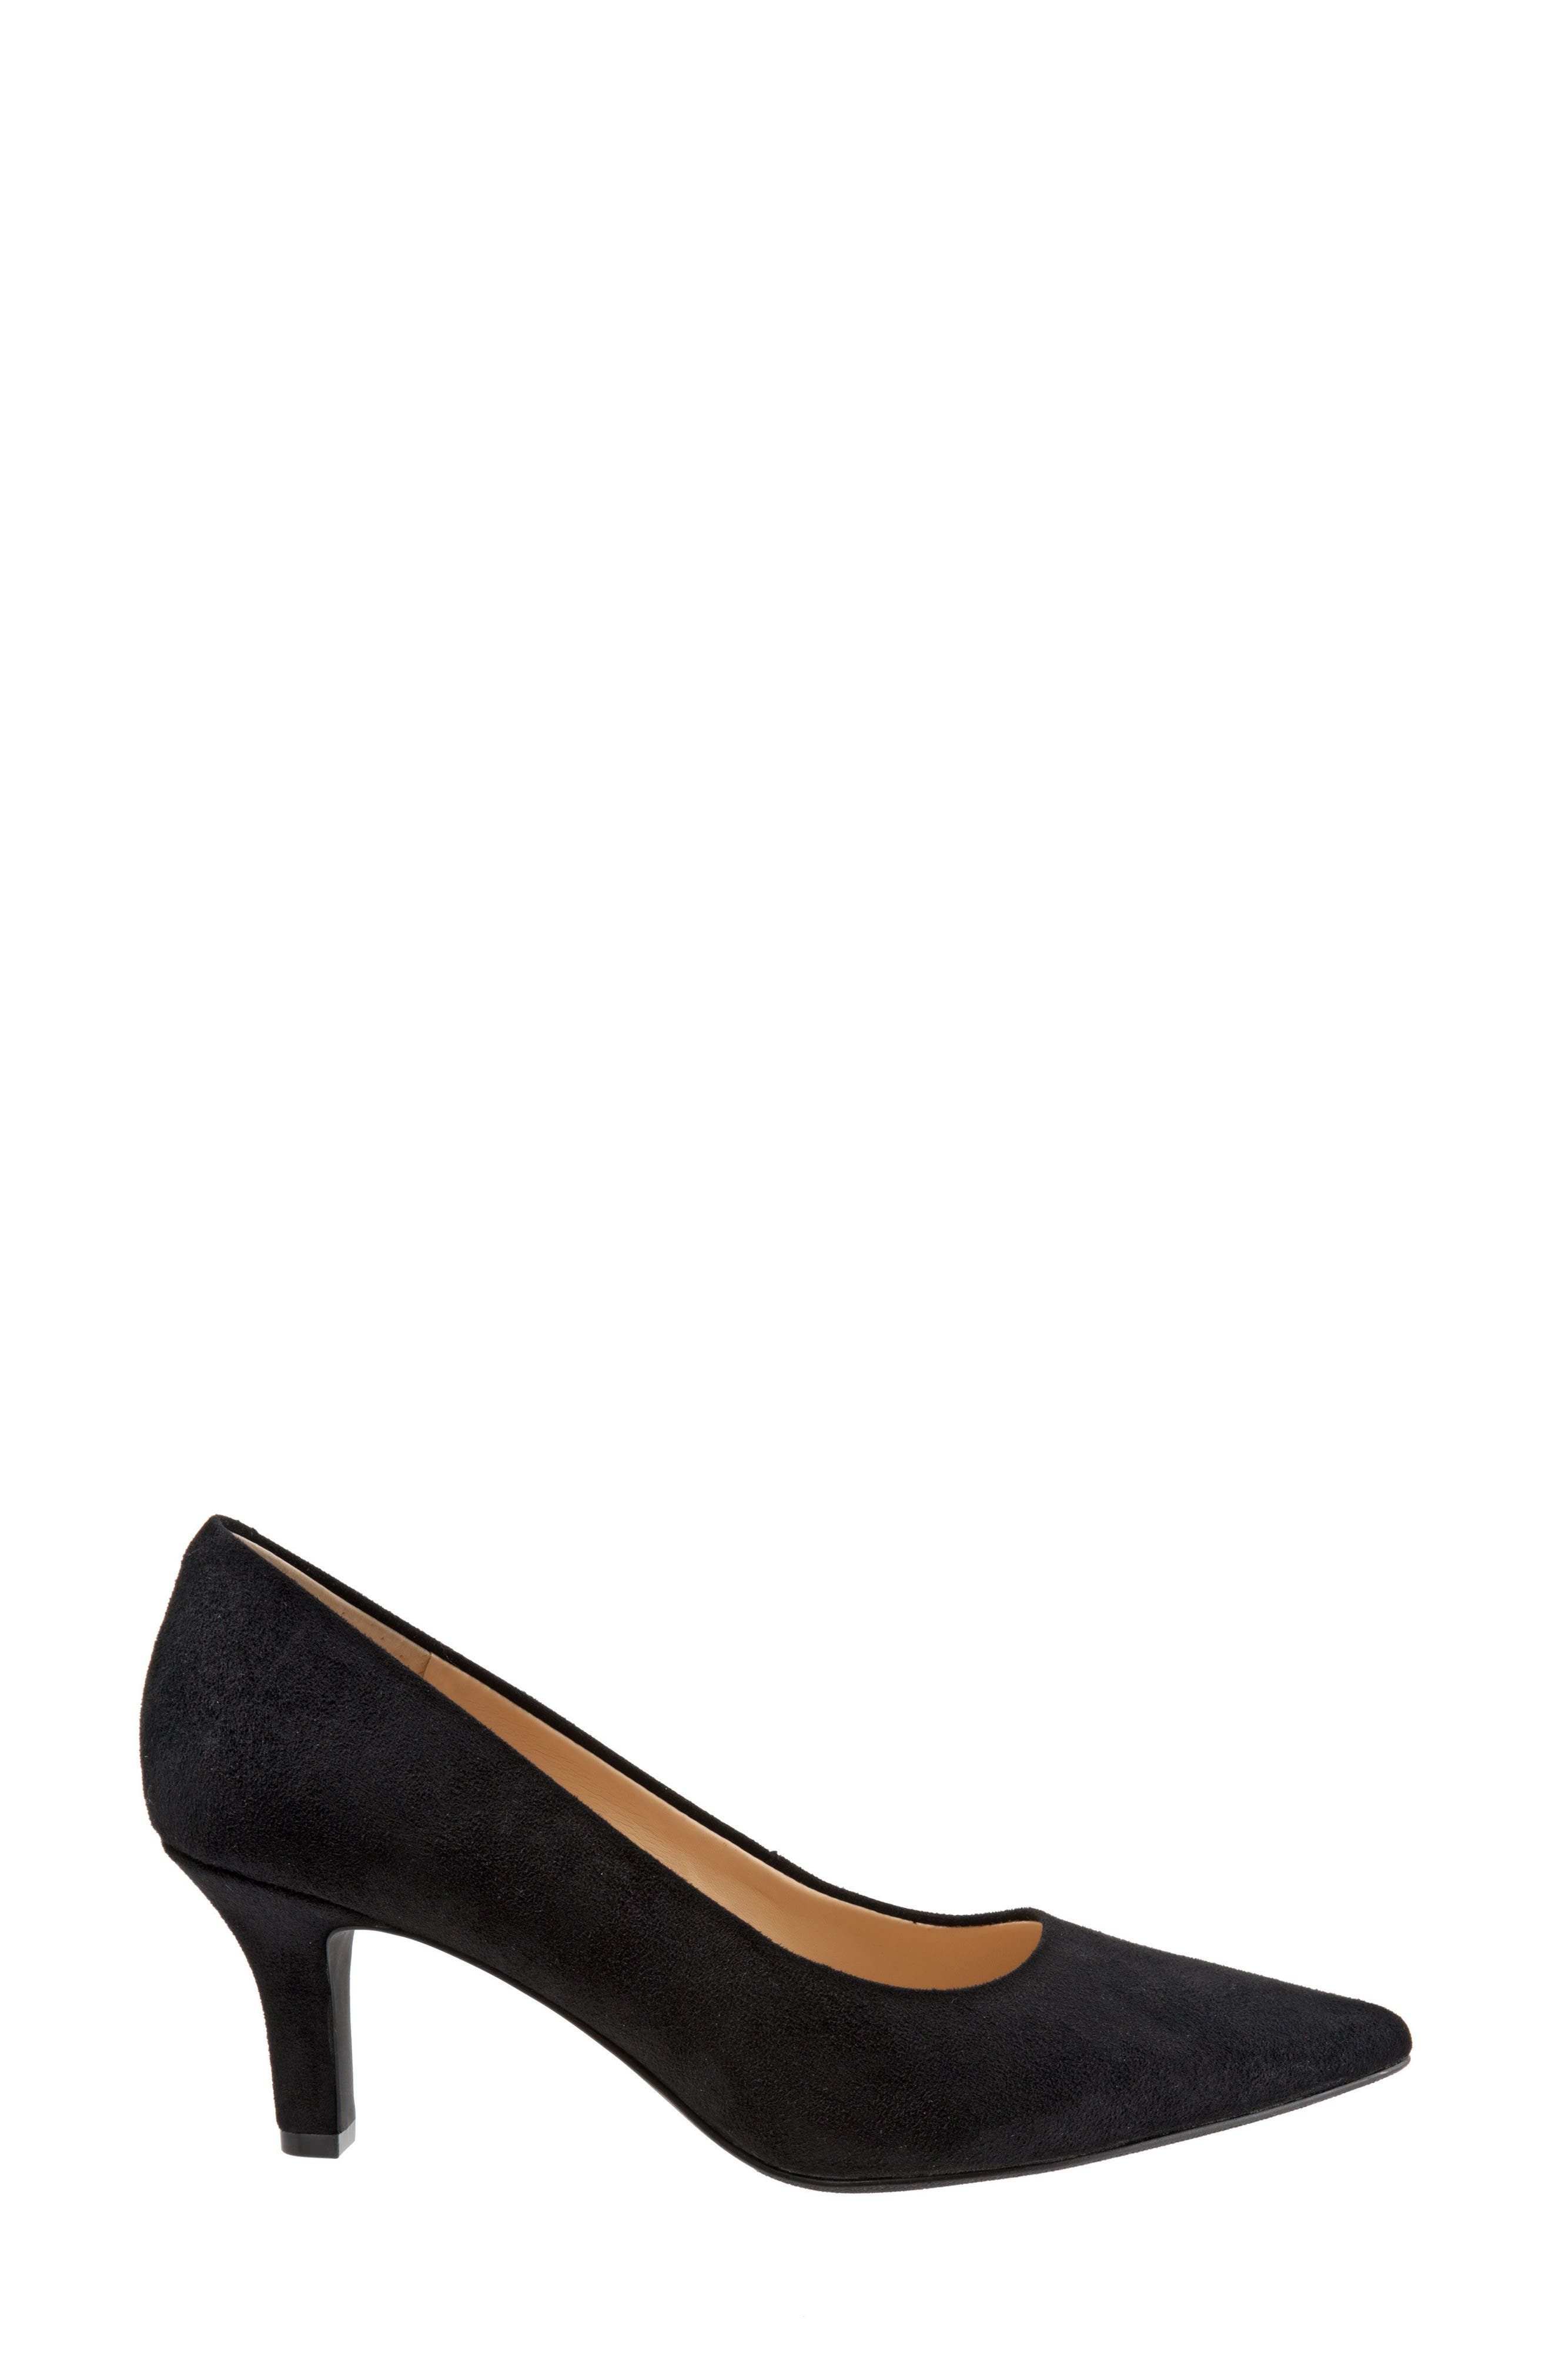 Noelle Pointy Toe Pump,                             Alternate thumbnail 3, color,                             BLACK FABRIC